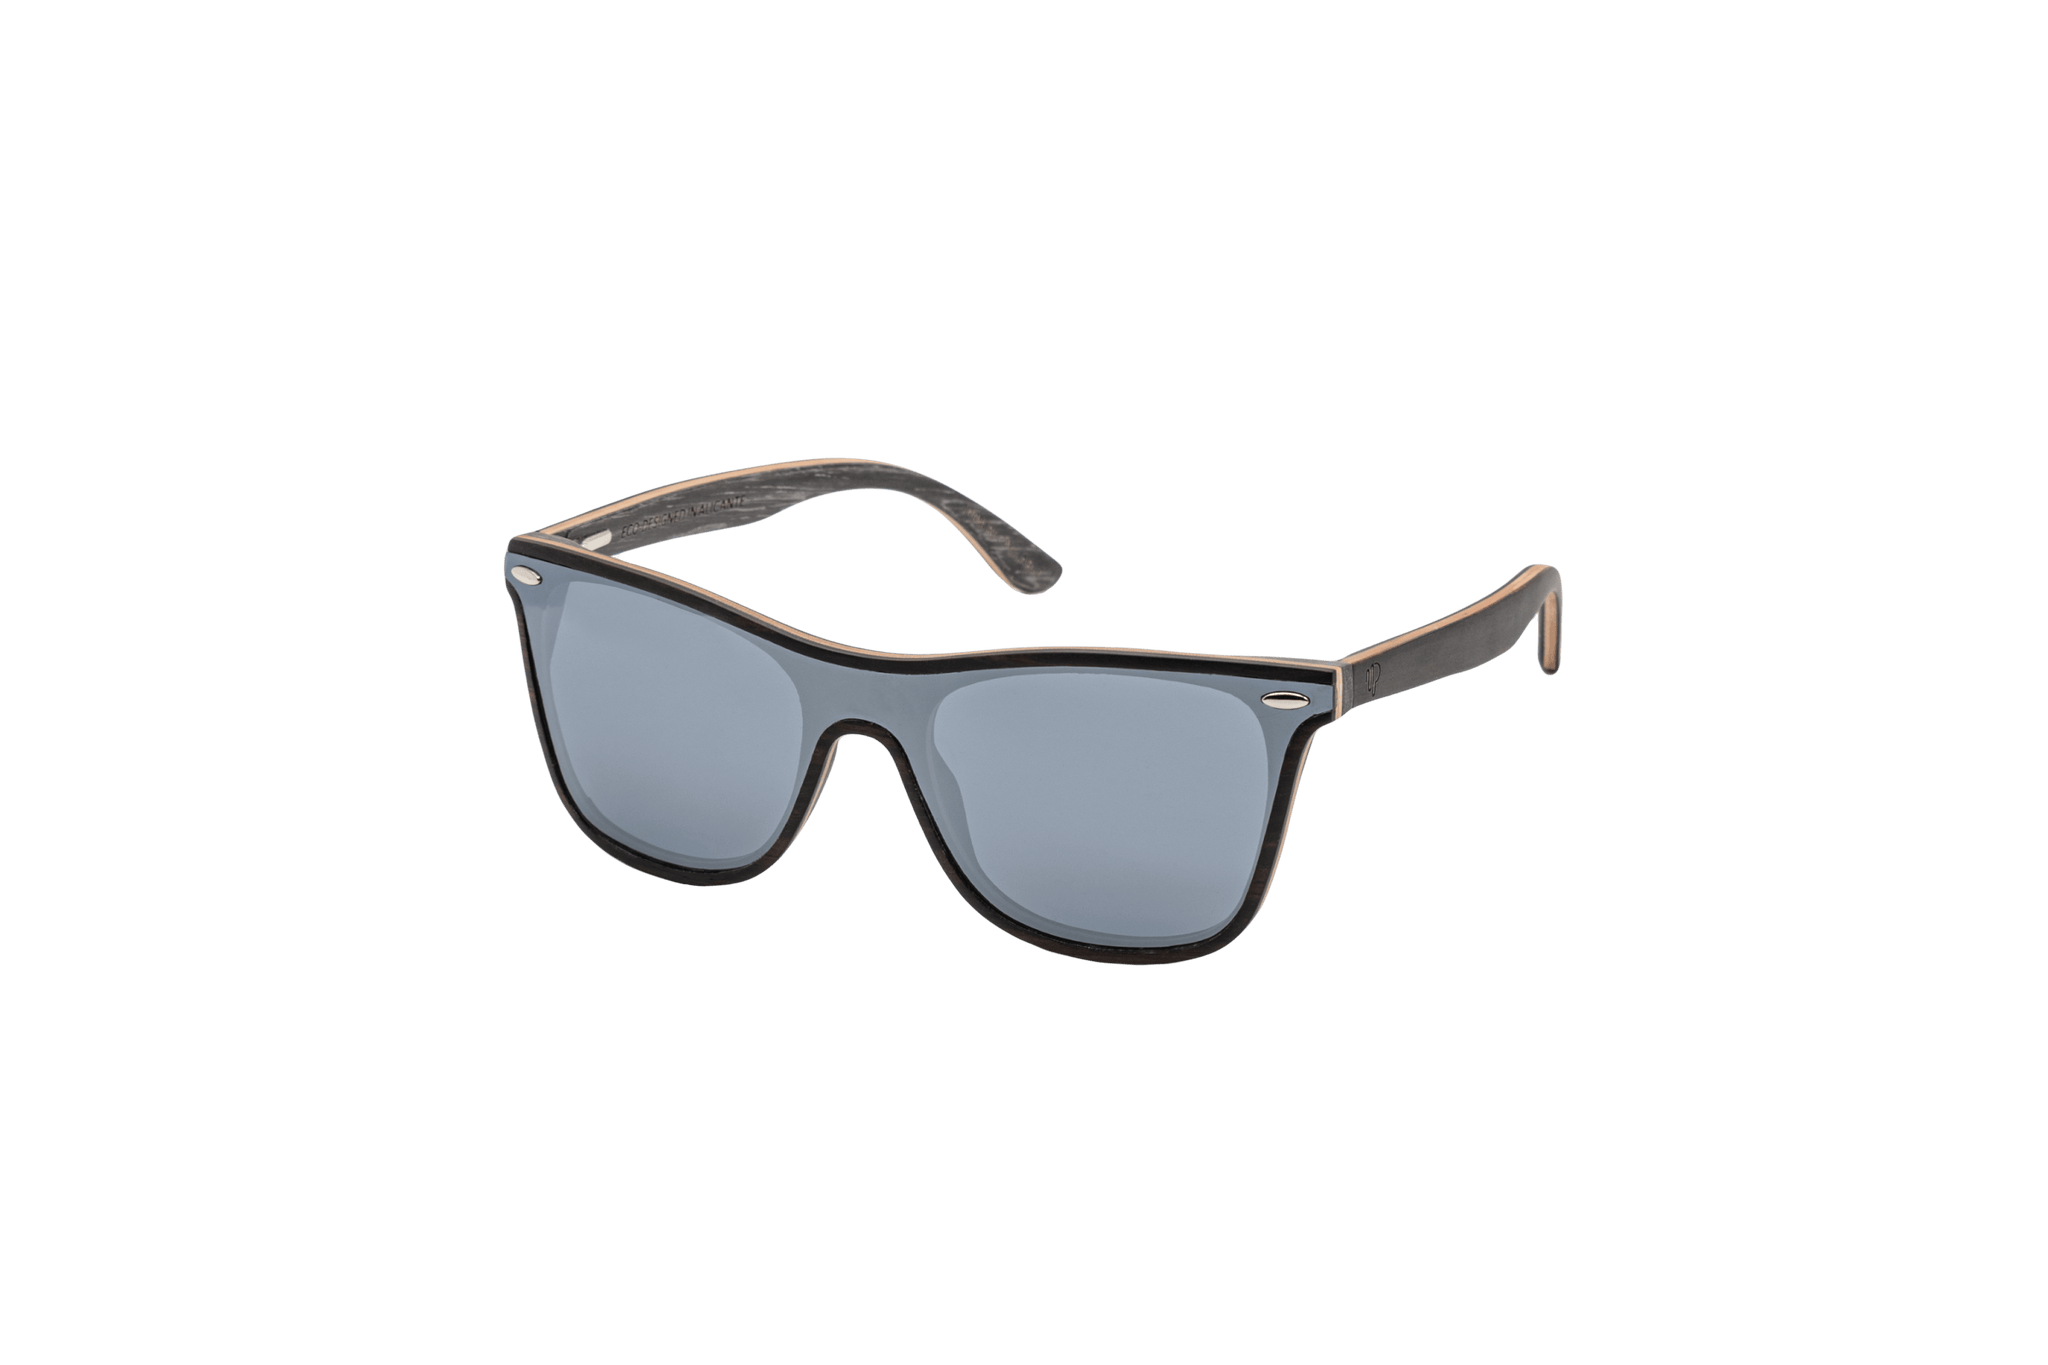 PULSE SUNGLASSES RINO Best Value Mens Wooden Frame Sunglasses | RINO